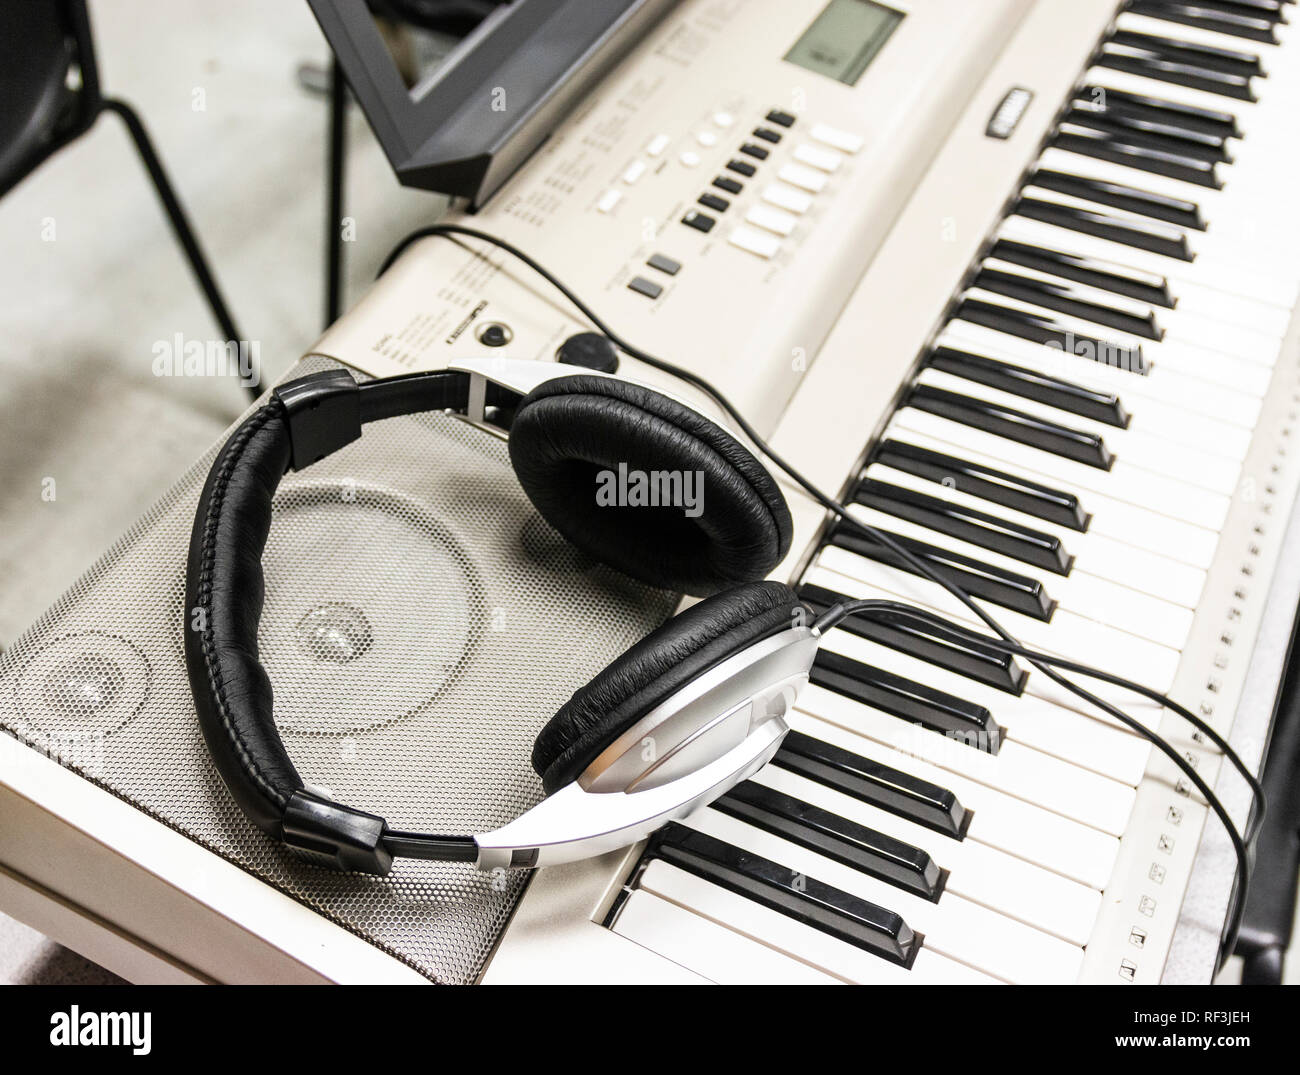 Headphones are resting on the speakers of an electric piano. - Stock Image